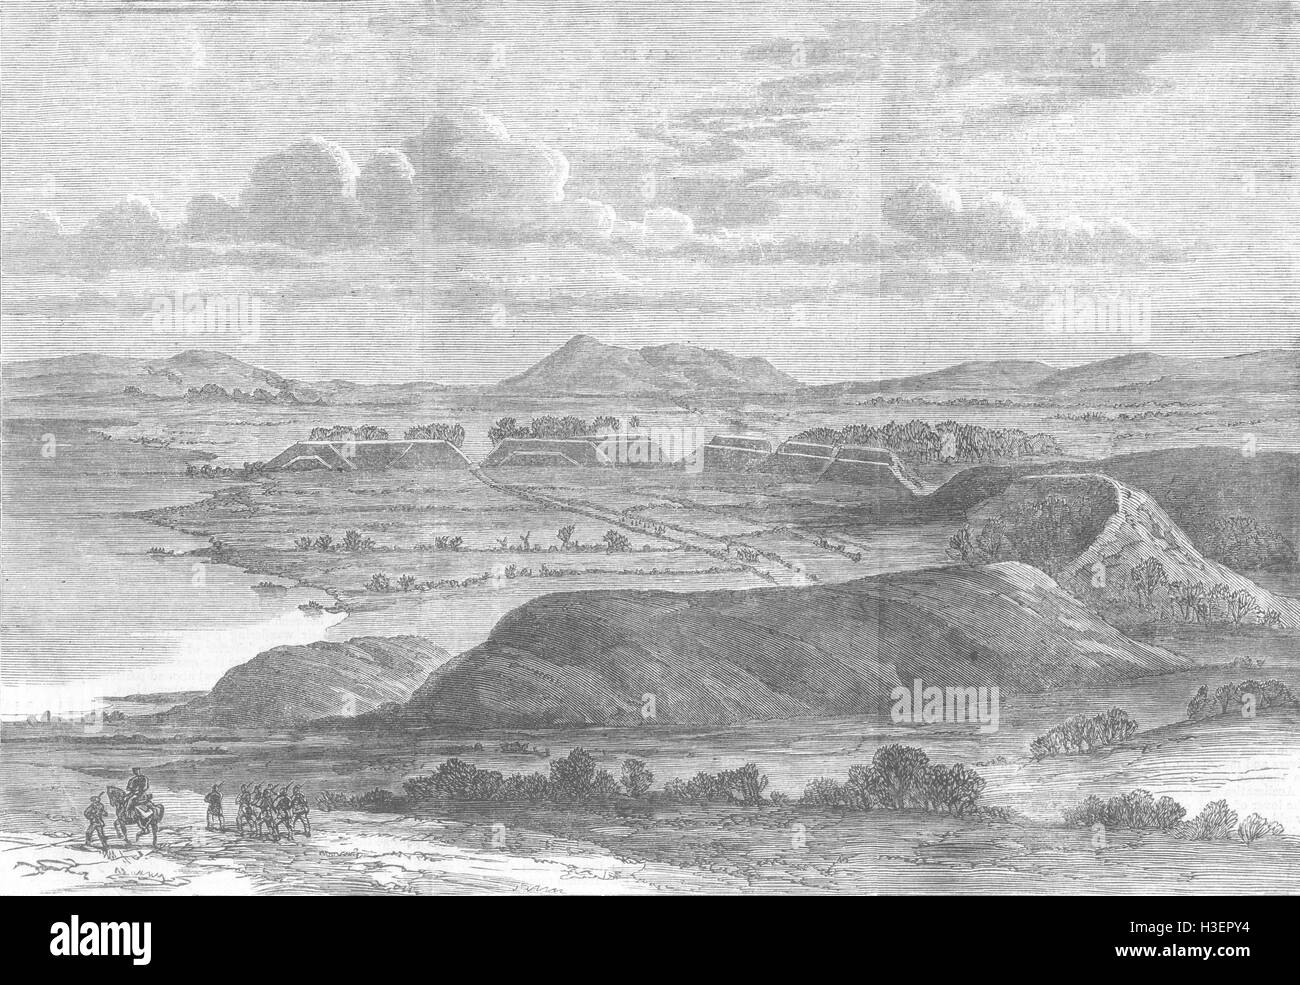 GERMANY Semicircular Rampart, Dannewerk, Bustrup 1864. Illustrated London News - Stock Image